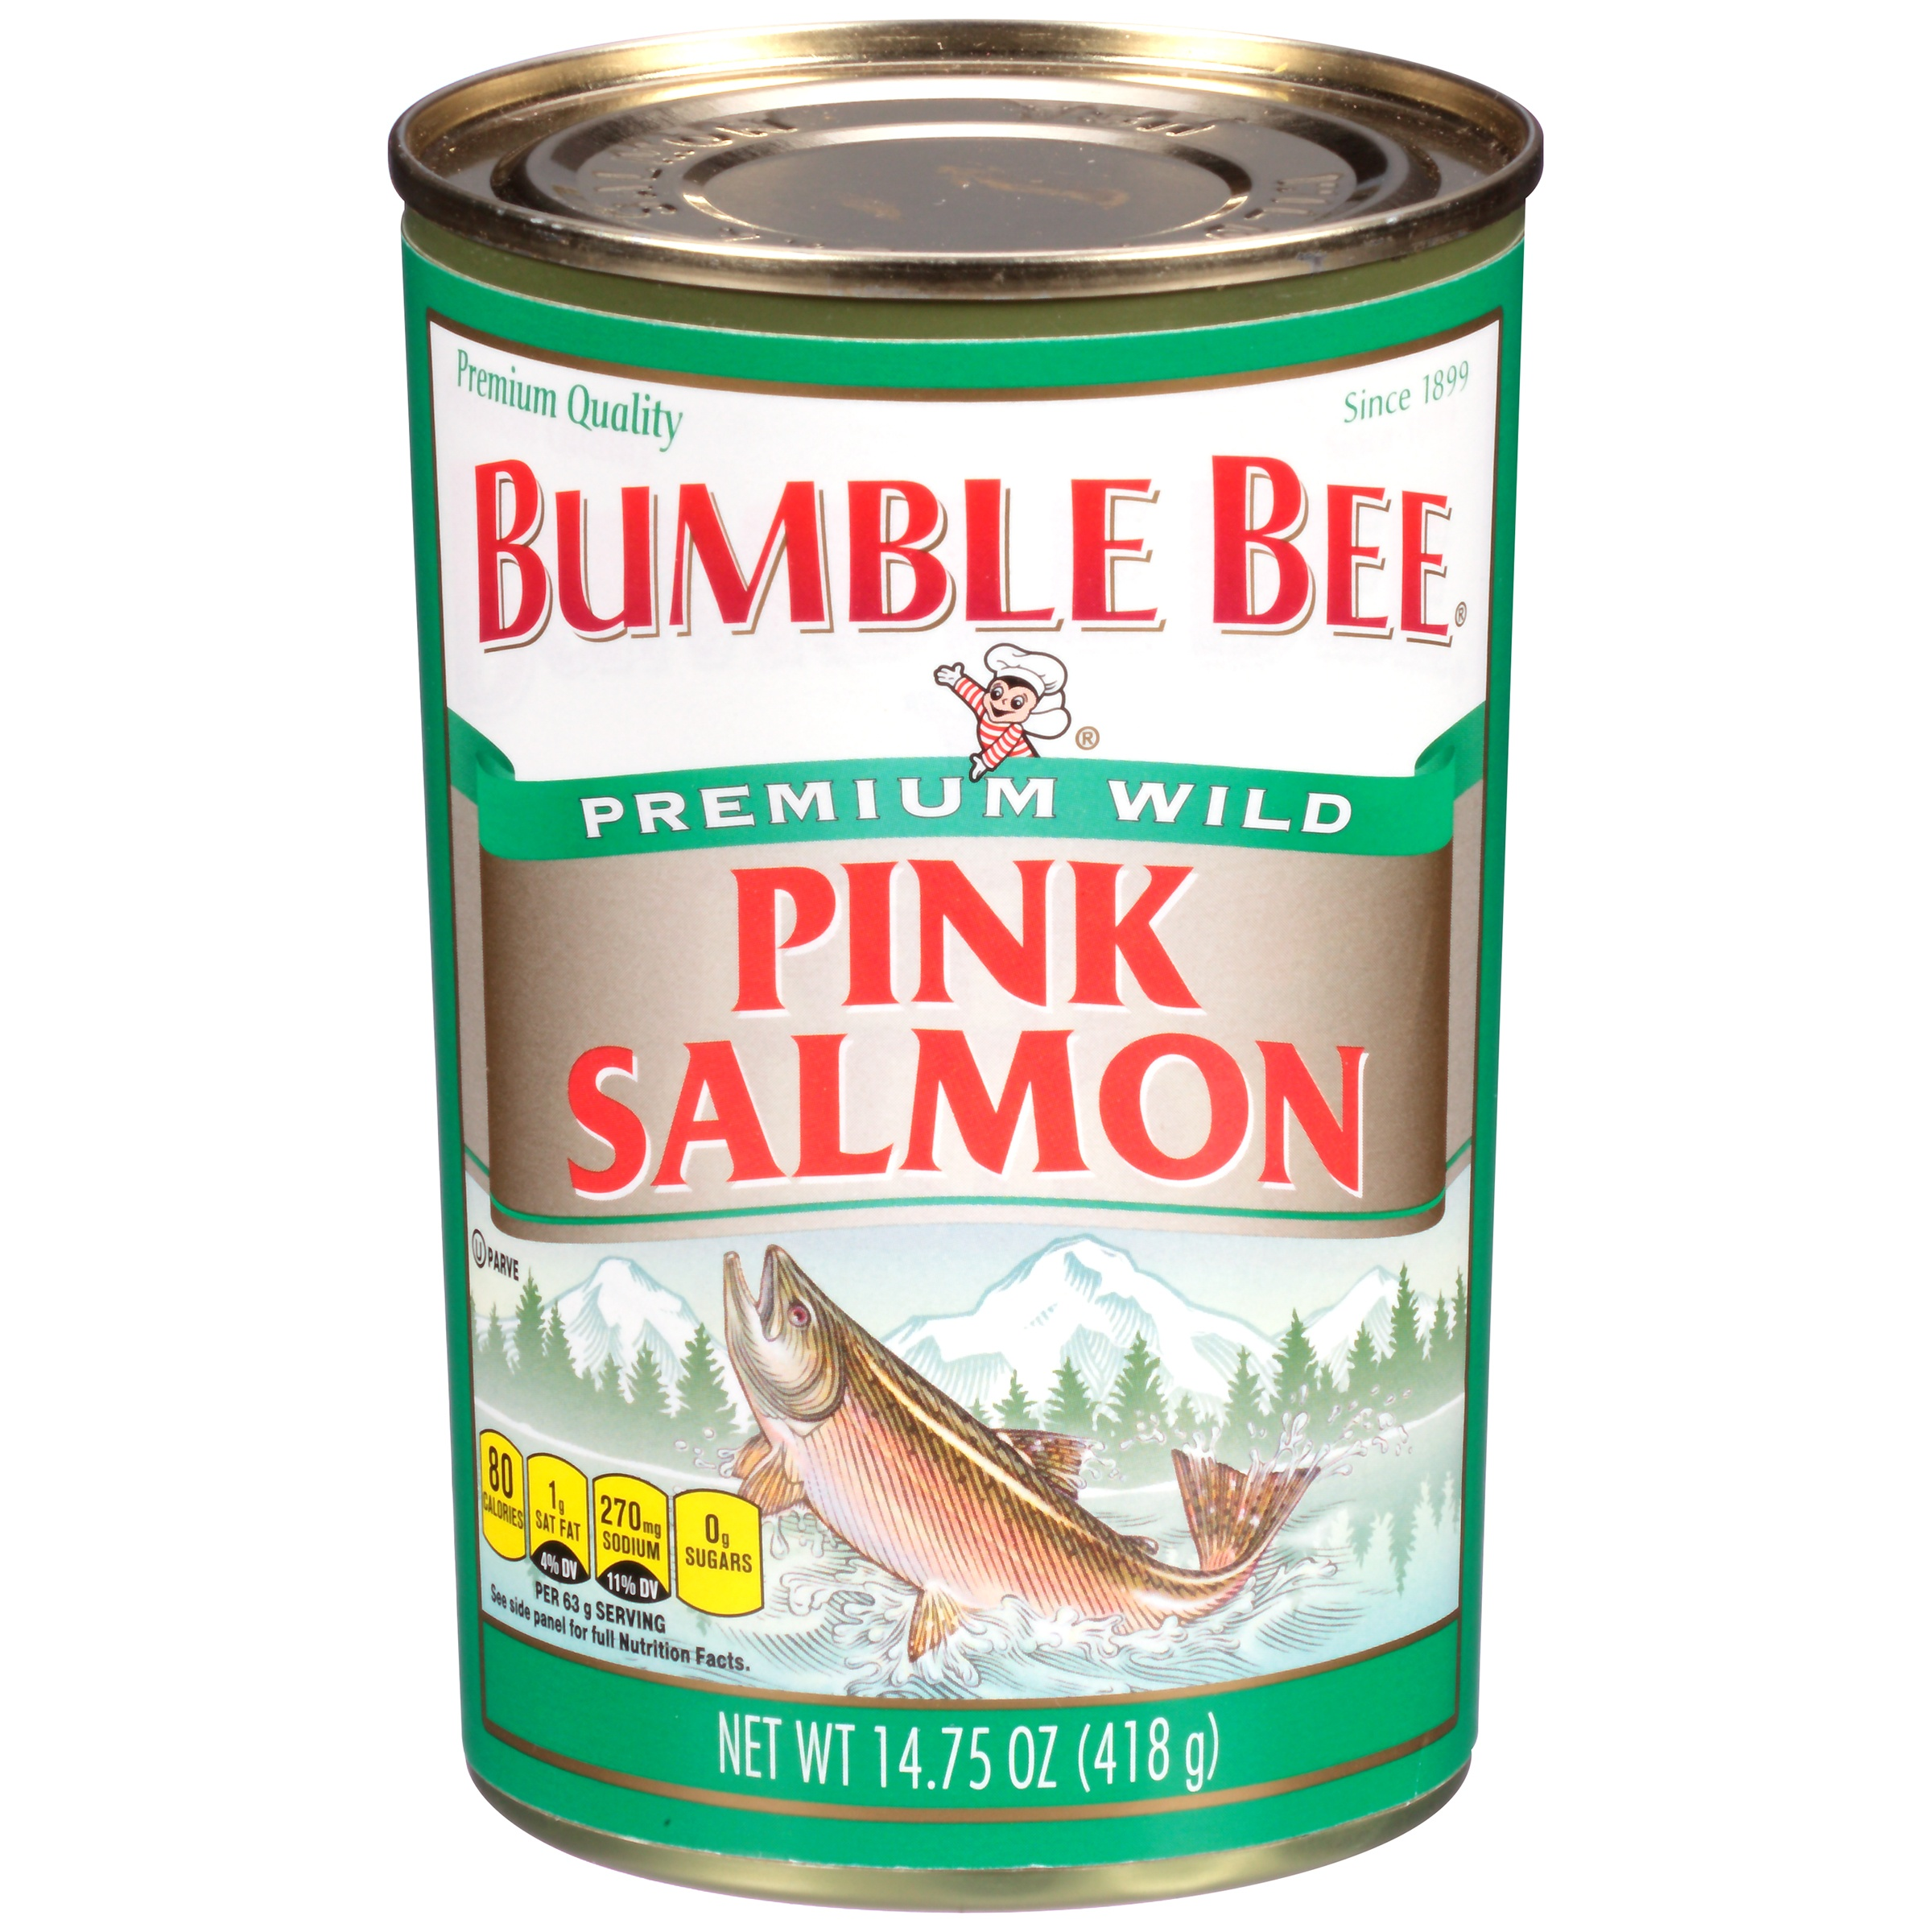 Bumble Bee Wild Pink Salmon, Ready to Eat Salmon, High Protein Food, 14.75oz Can